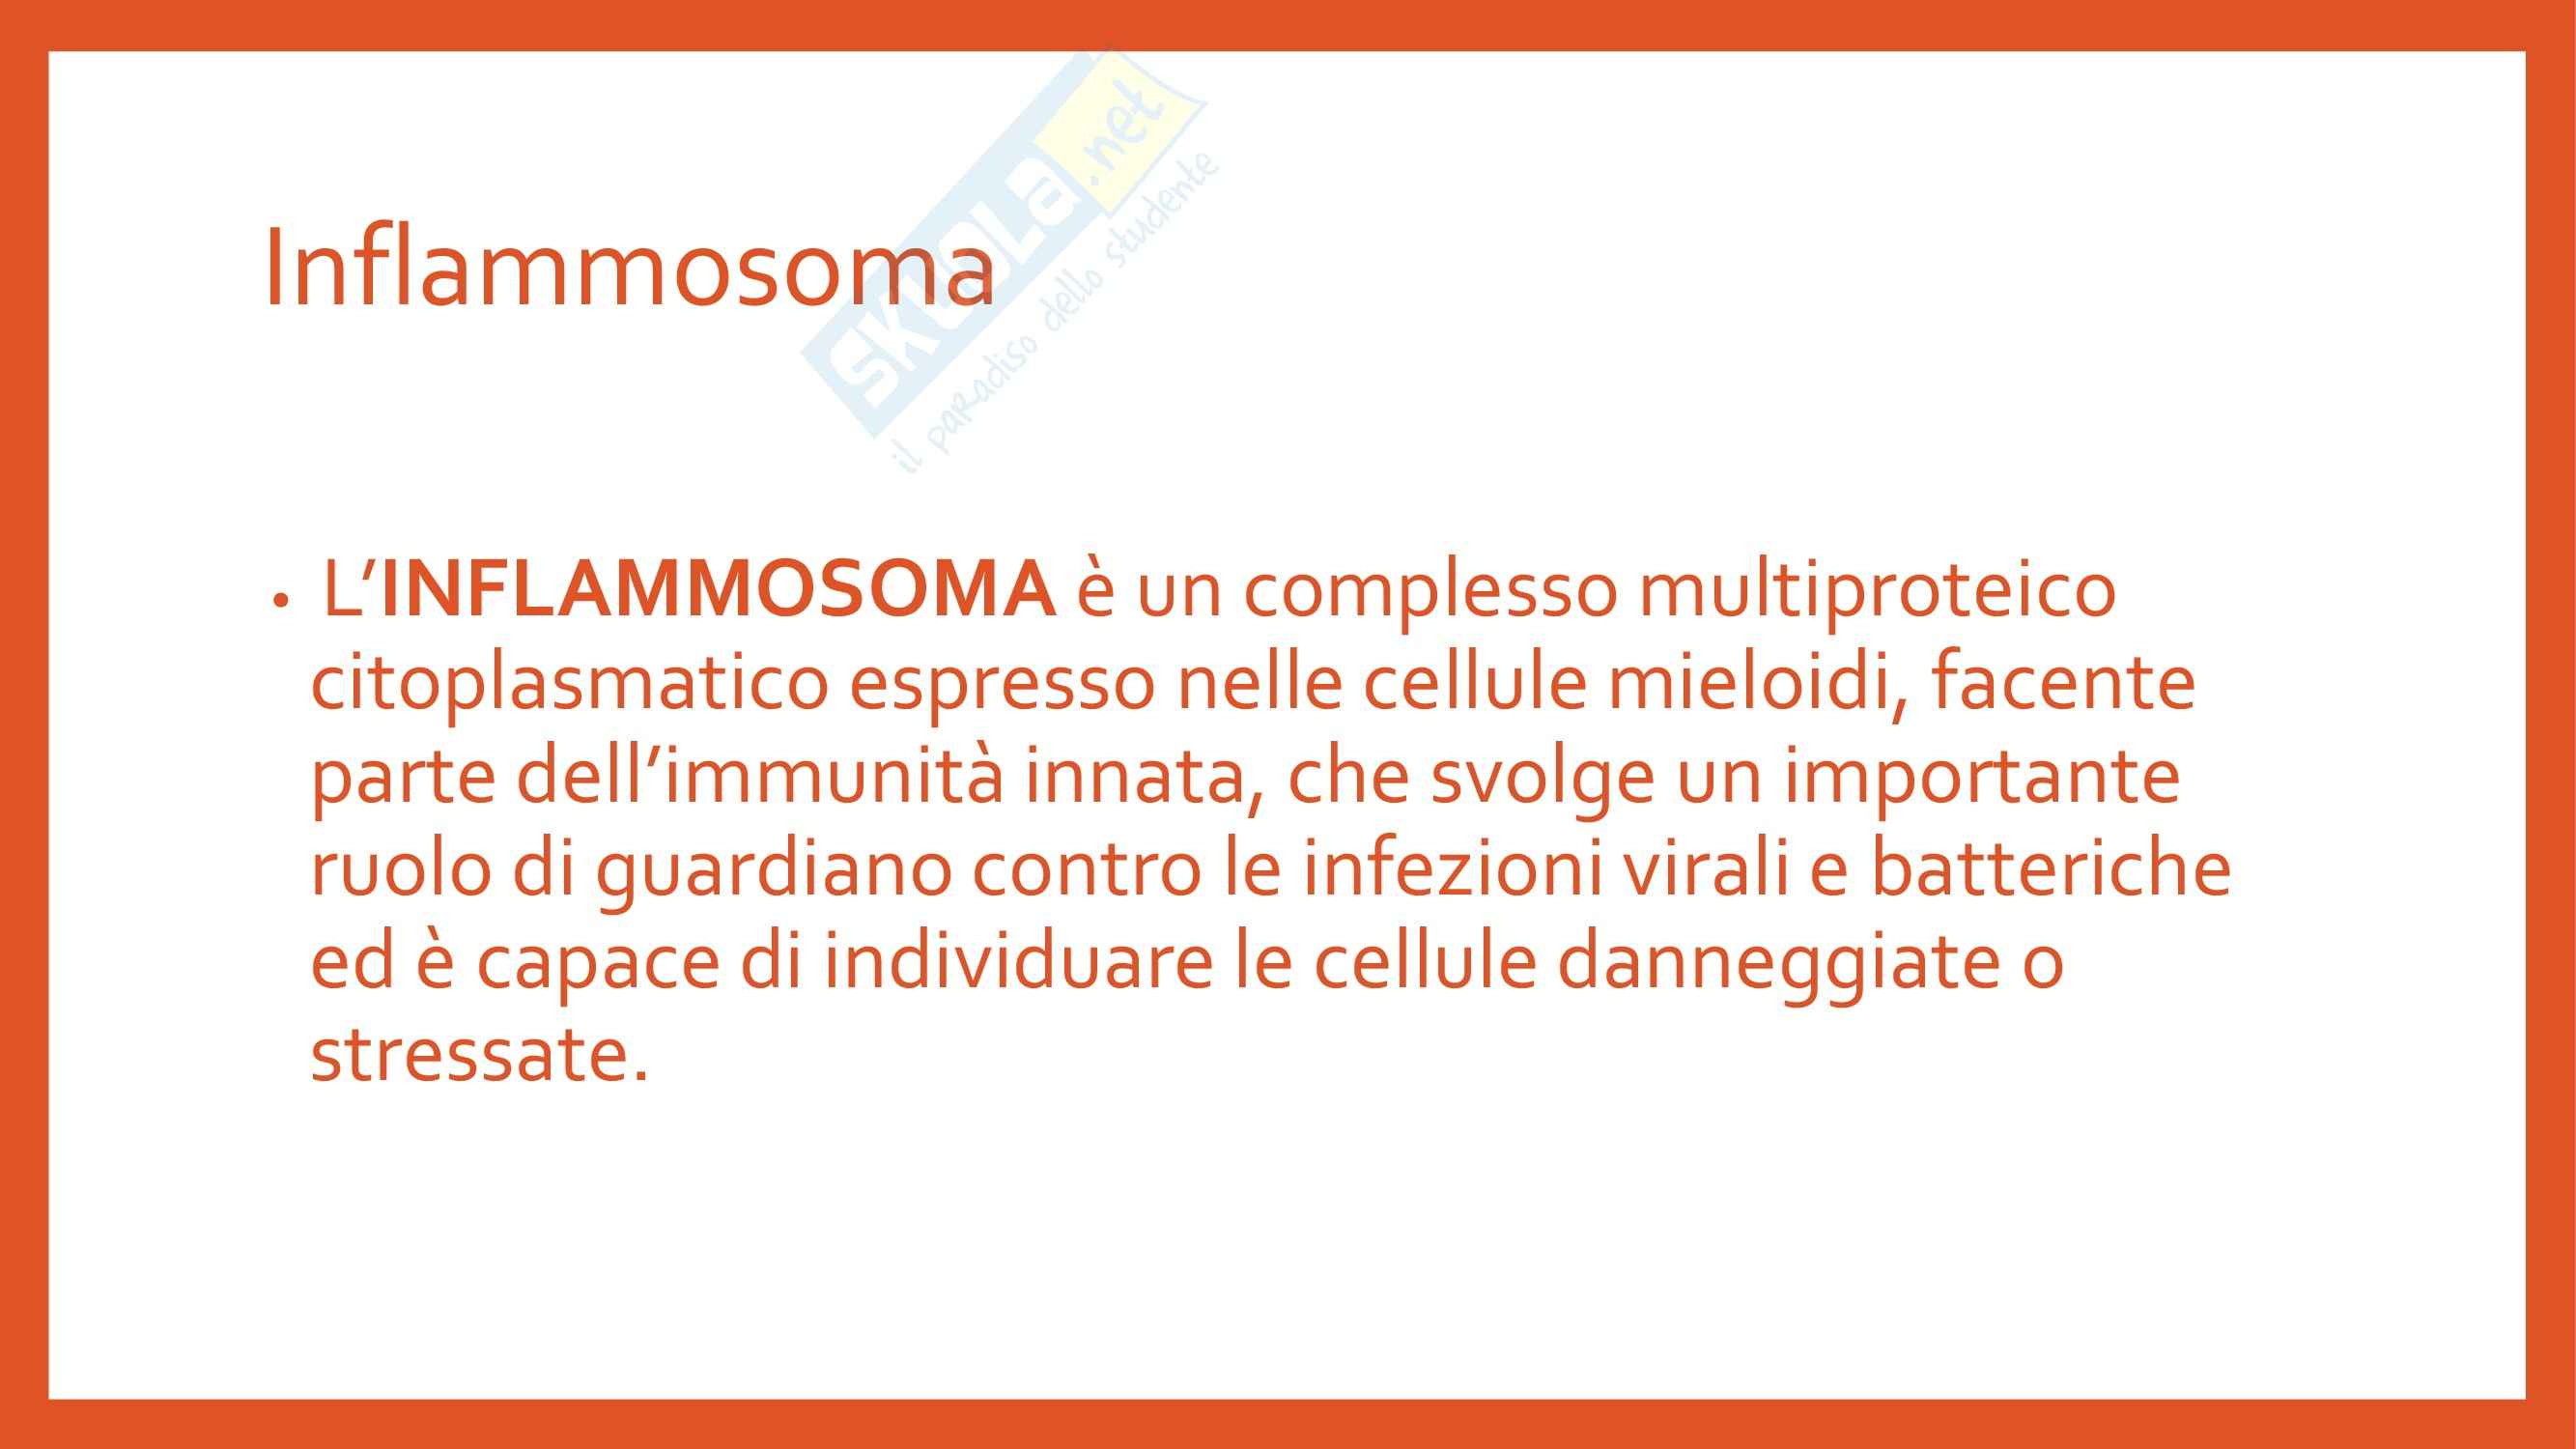 Immunologia - Inflammosoma Pag. 2